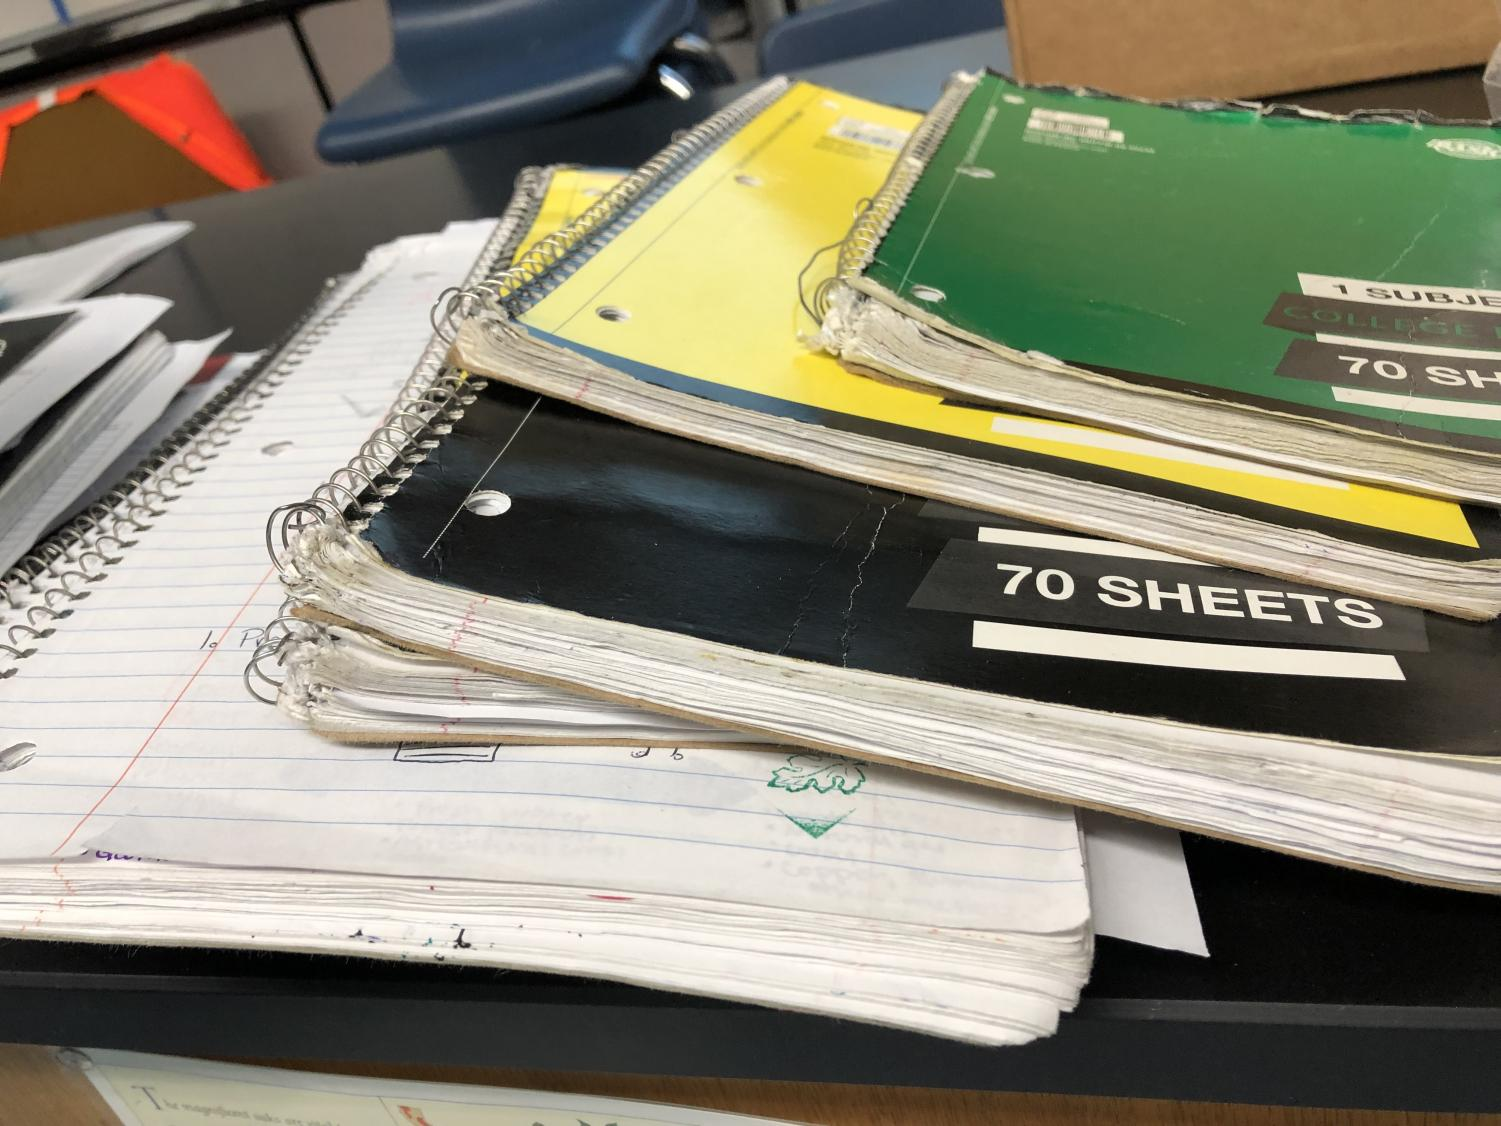 Students+carry+a+variety+of+binders%2C+notebooks%2C+and+loose+papers+in+their+backpacks.